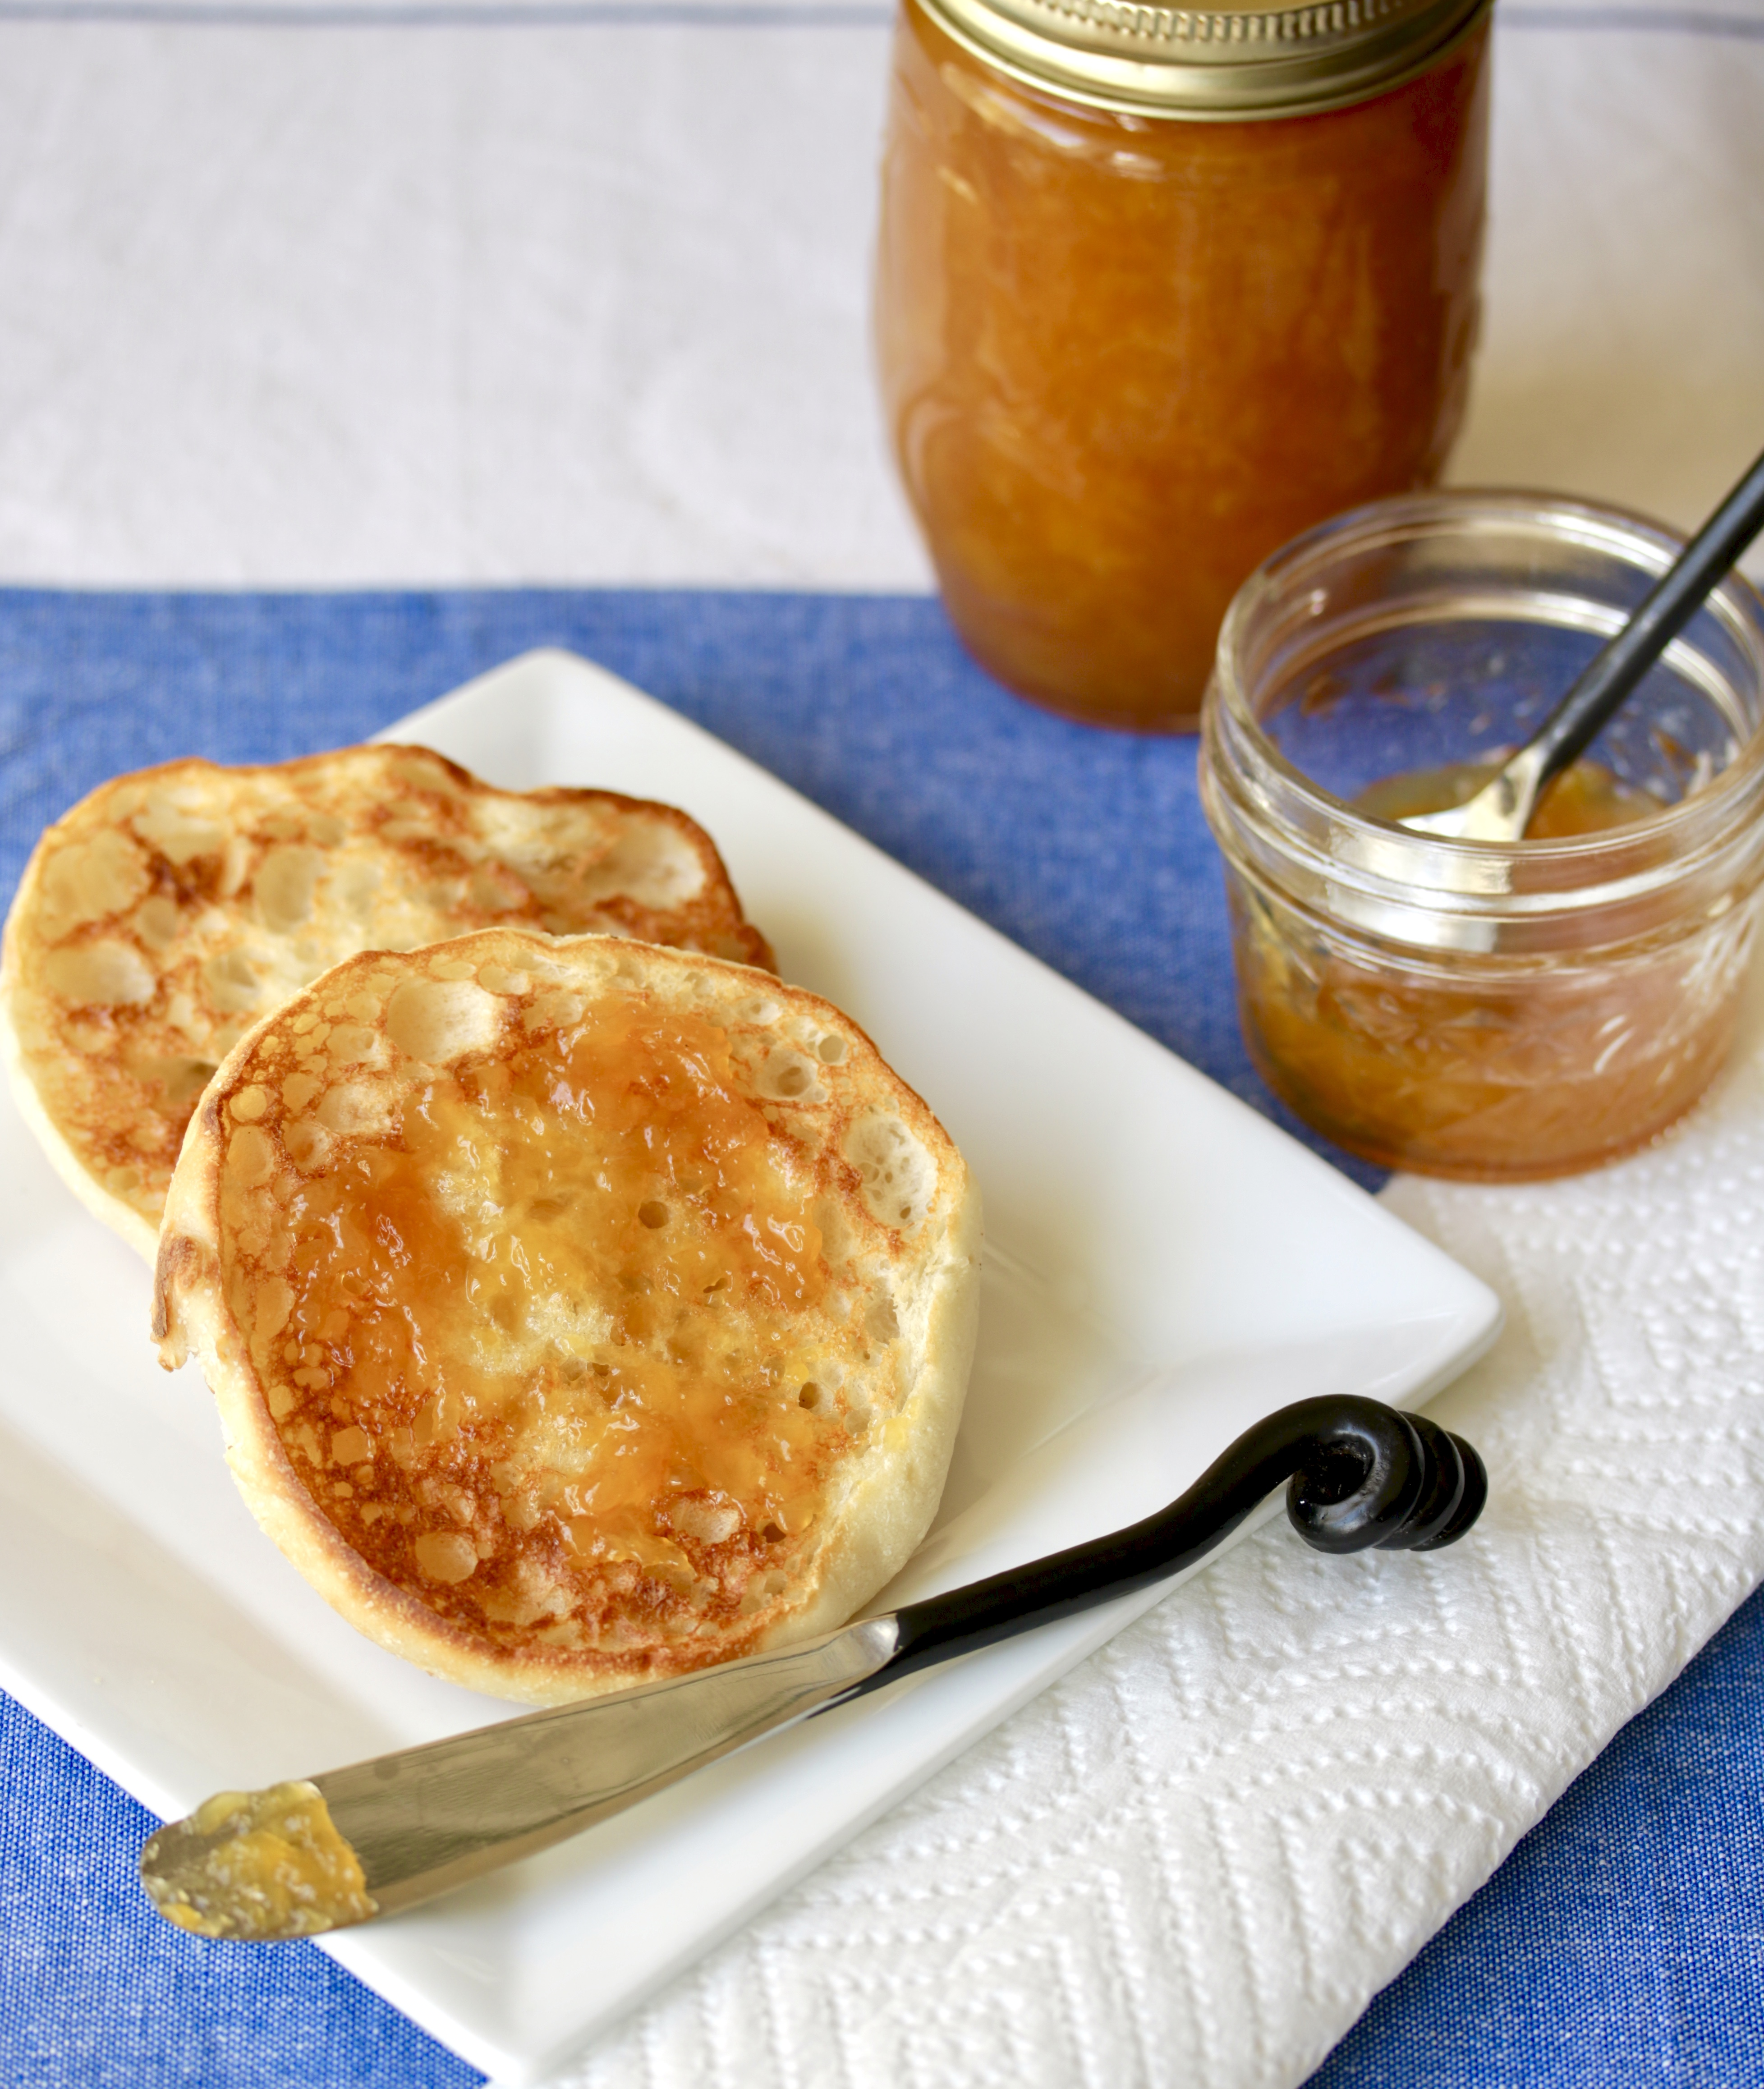 toasted English muffins with peach jam